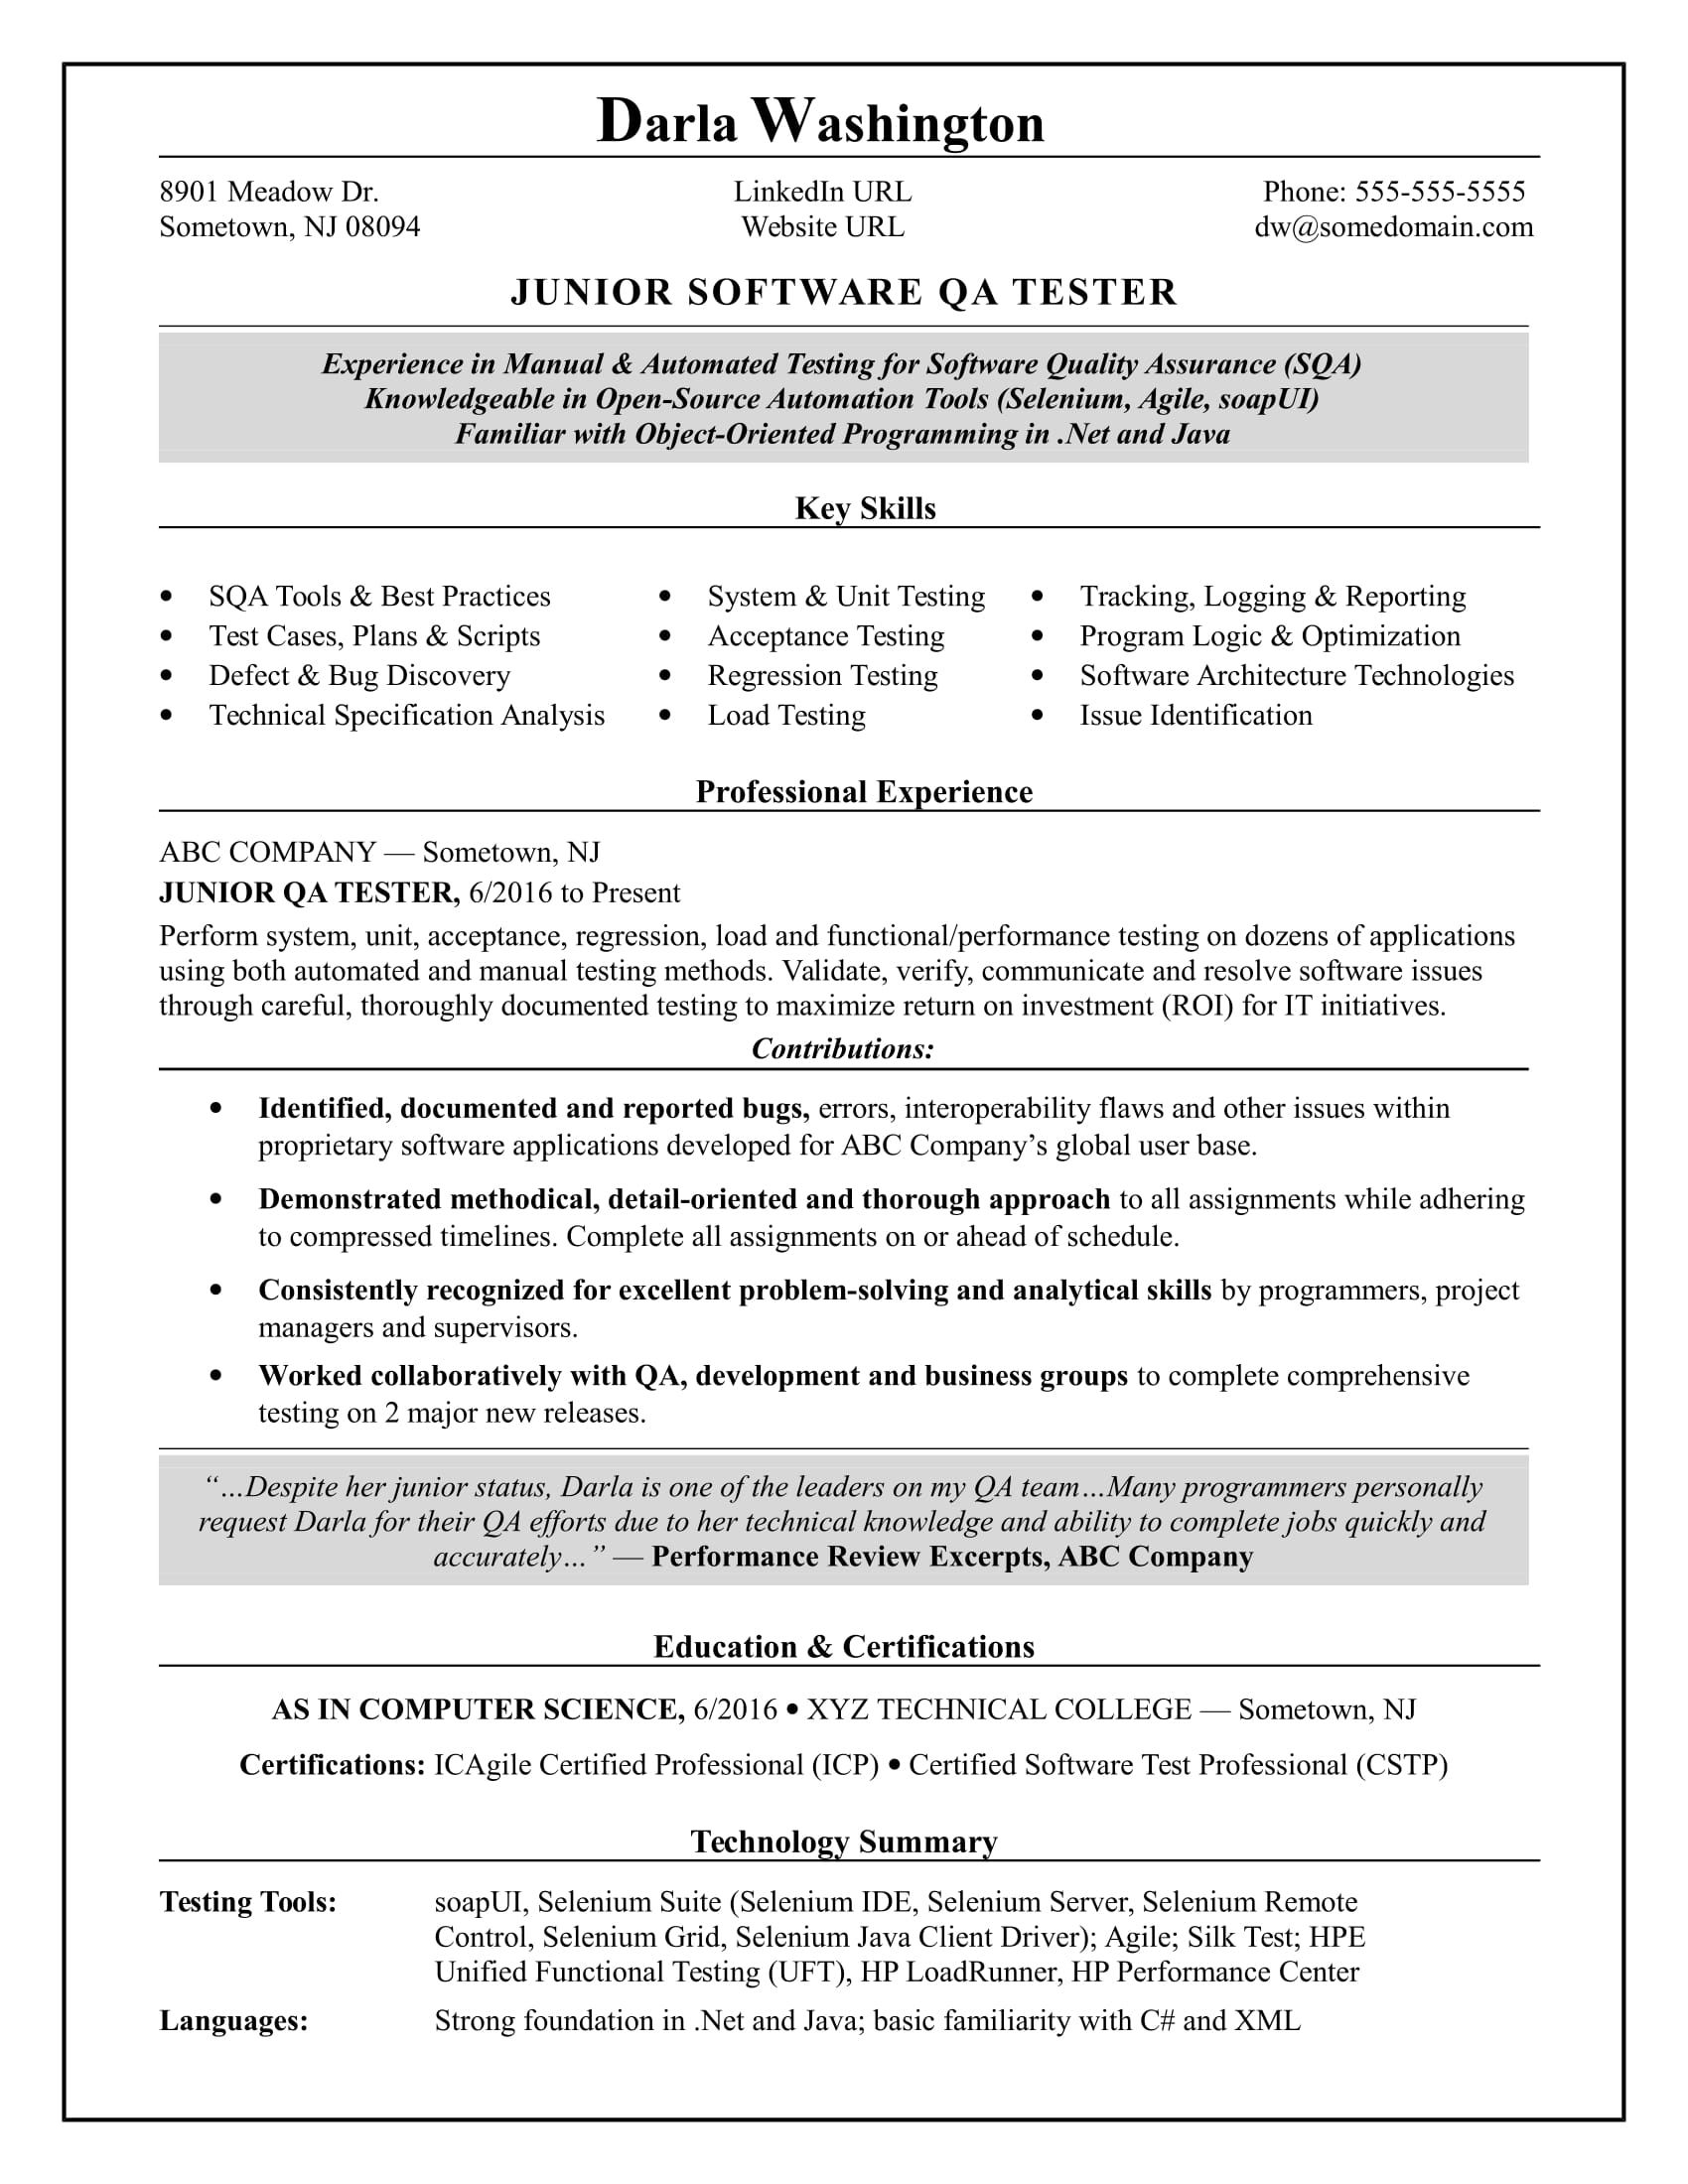 Entry Level QA Software Tester Resume Sample  Entry Level Jobs Resume